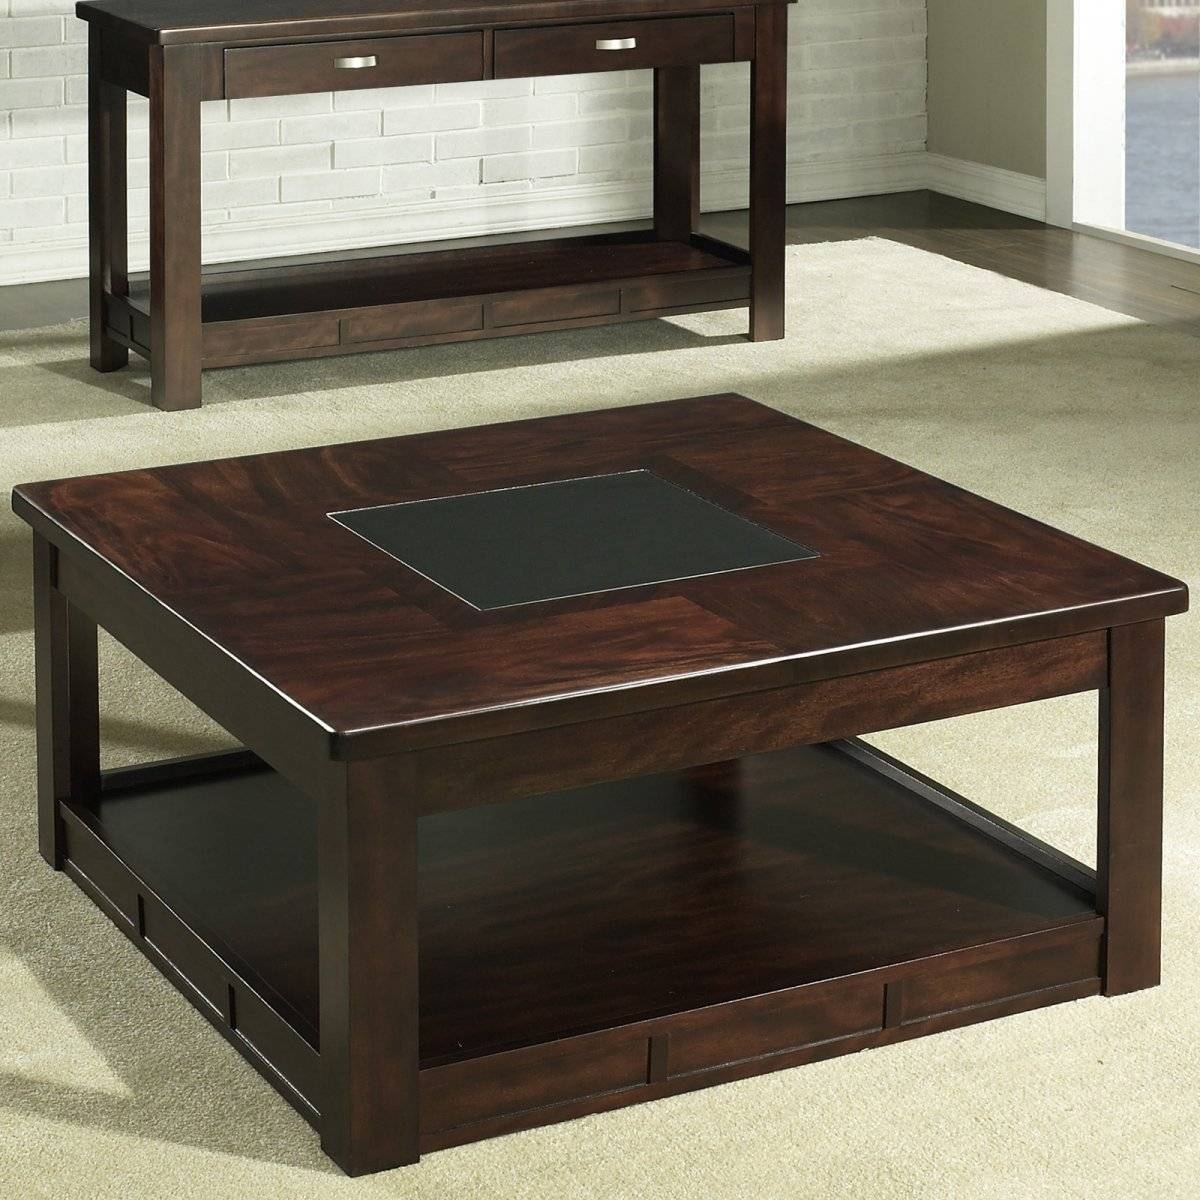 Square Wood Coffee Table With Drawers And Glass Top In Square Coffee Table With Storage Drawers (View 11 of 15)